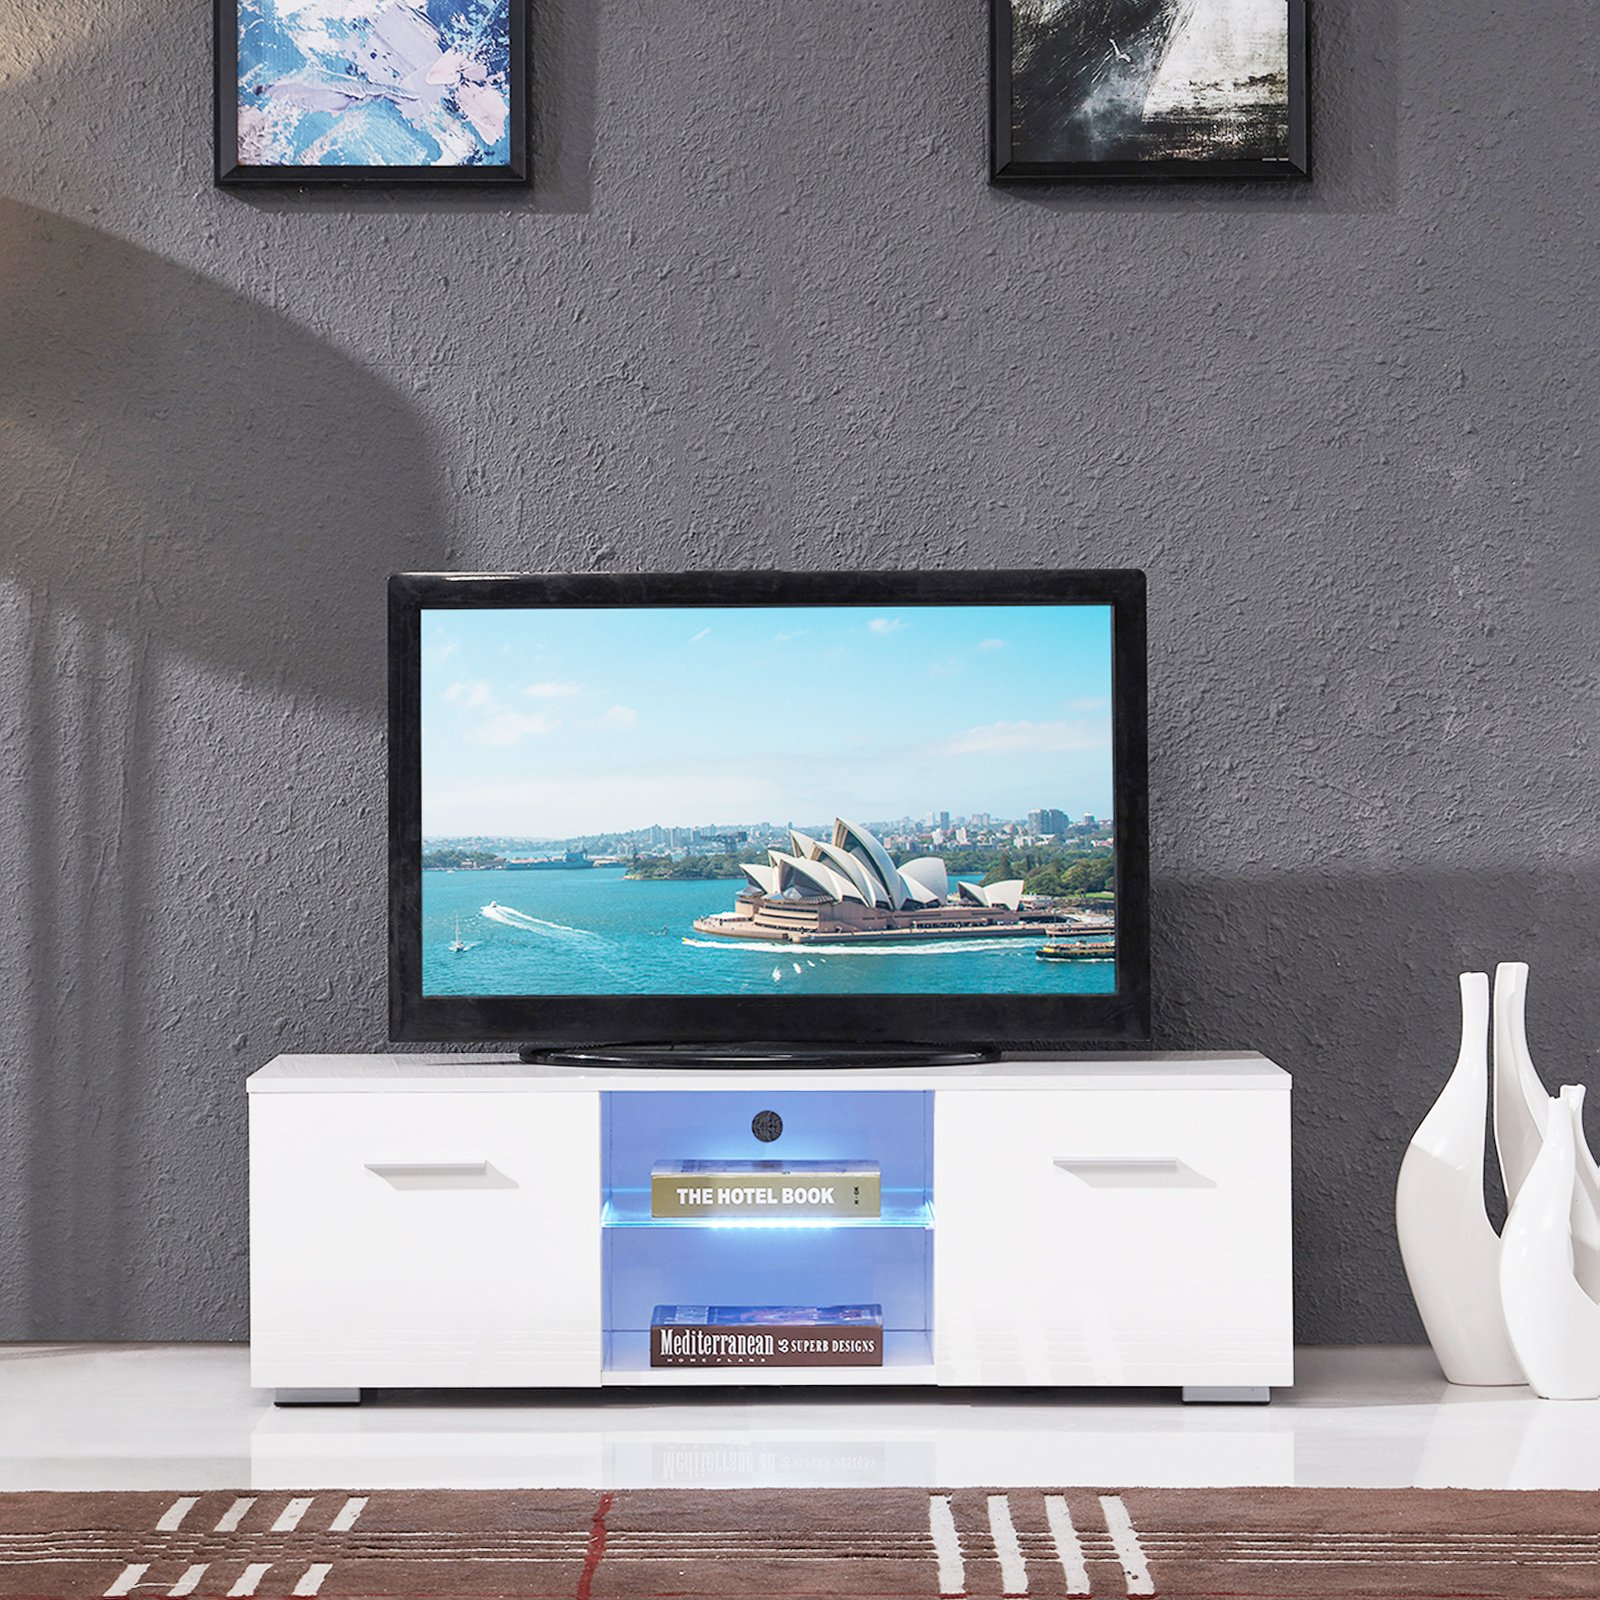 SUNCOO TV Stand Media Console Cabinet LED Shelves with 2 Drawers for Living Room Storage High Gloss White for up to 47-inch TV Screens